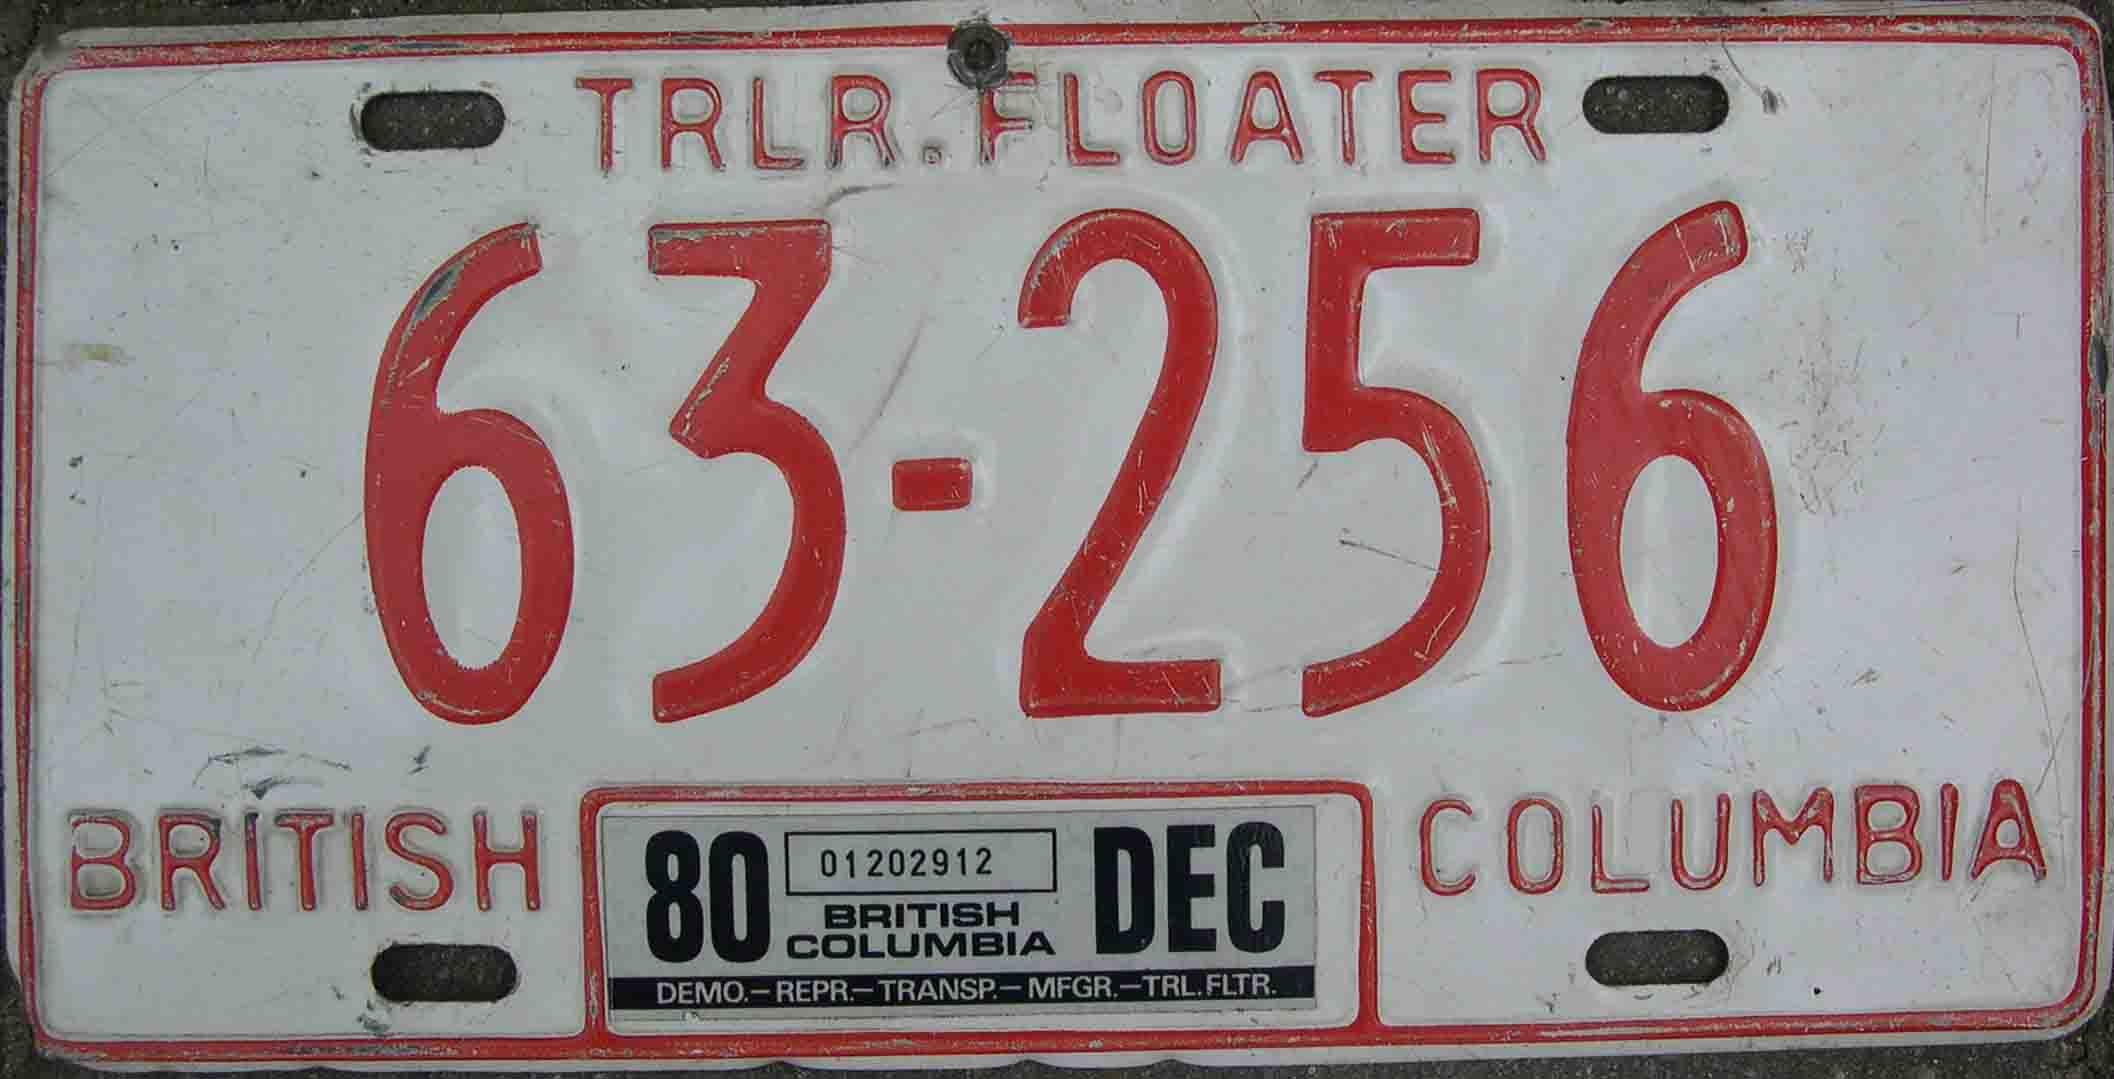 1980 Trailer Floater.63 256